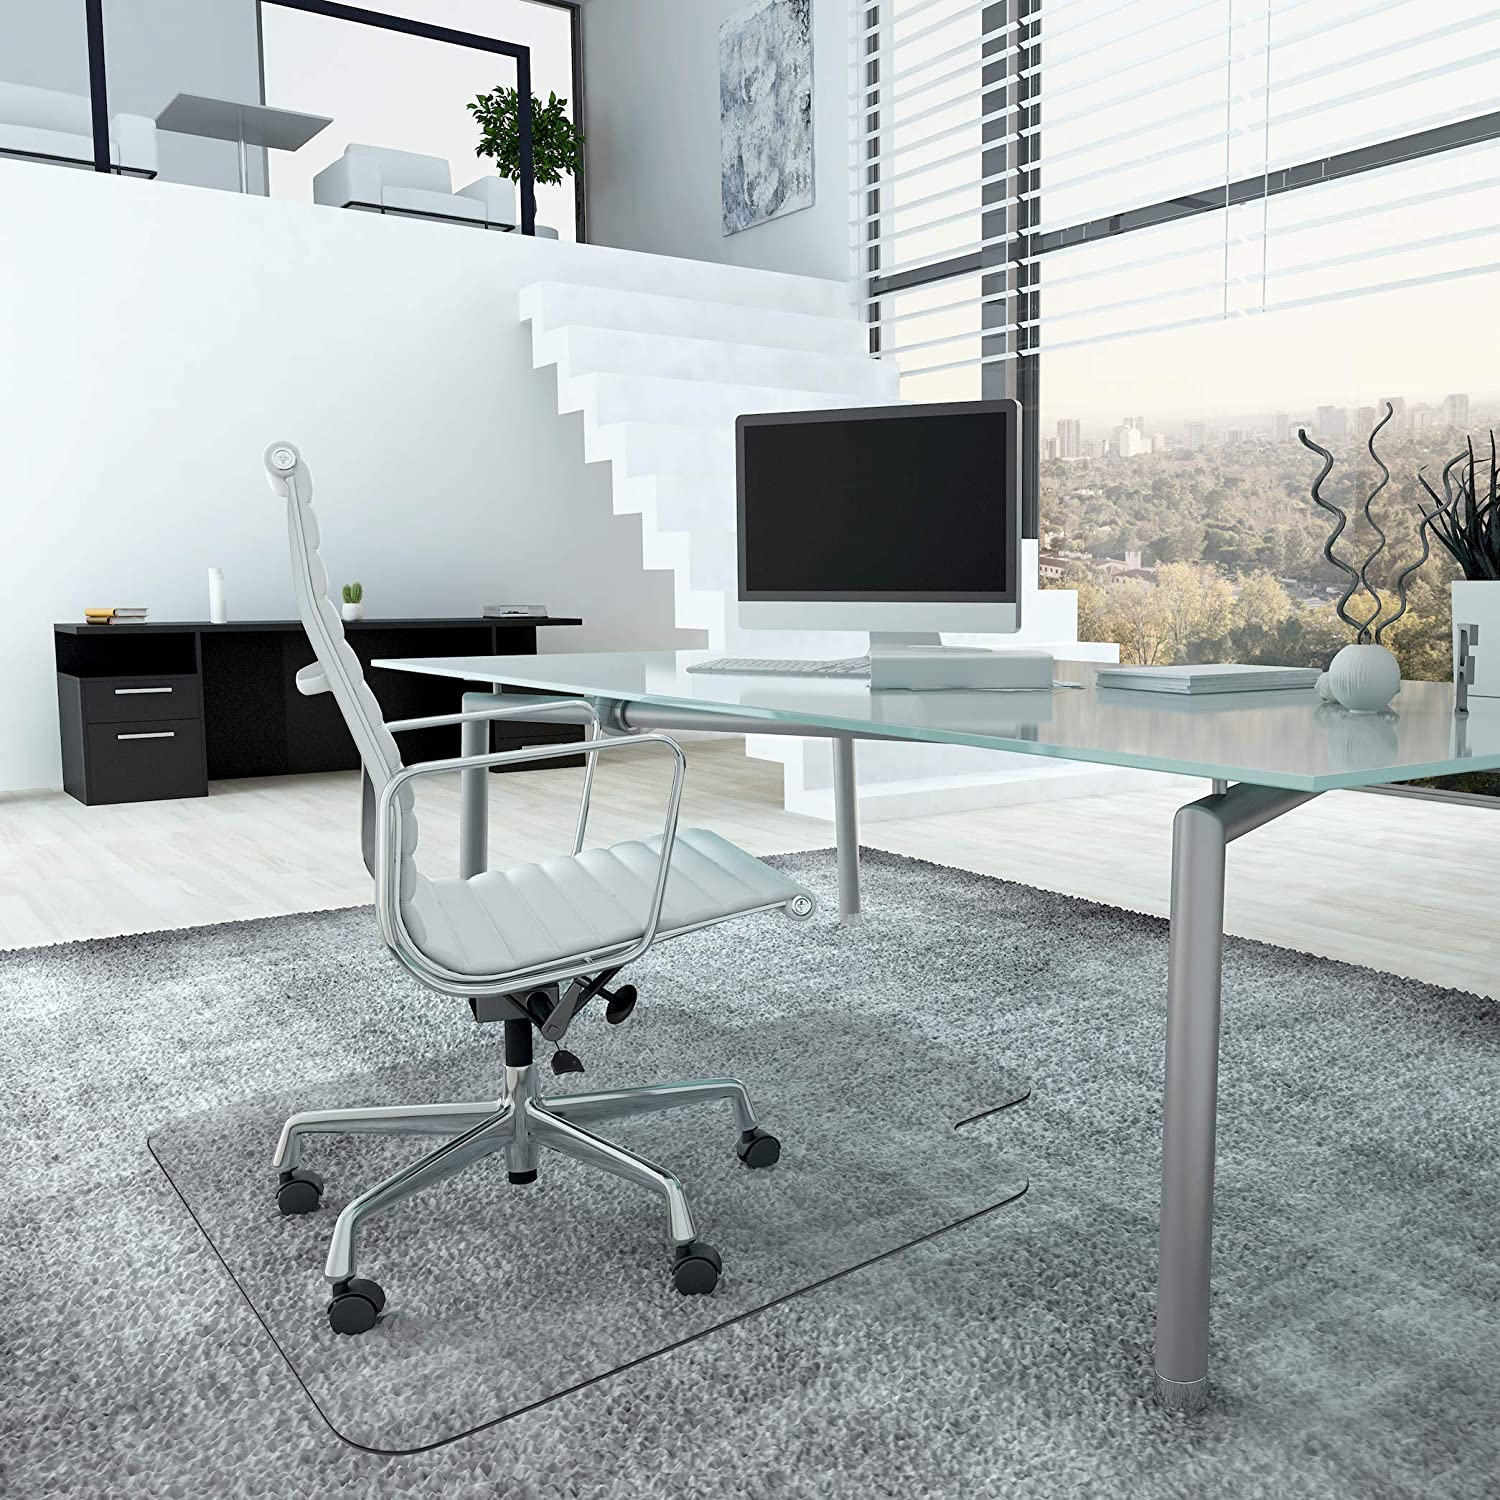 Office Chair Mat for Carpeted Floors - Heavy Duty